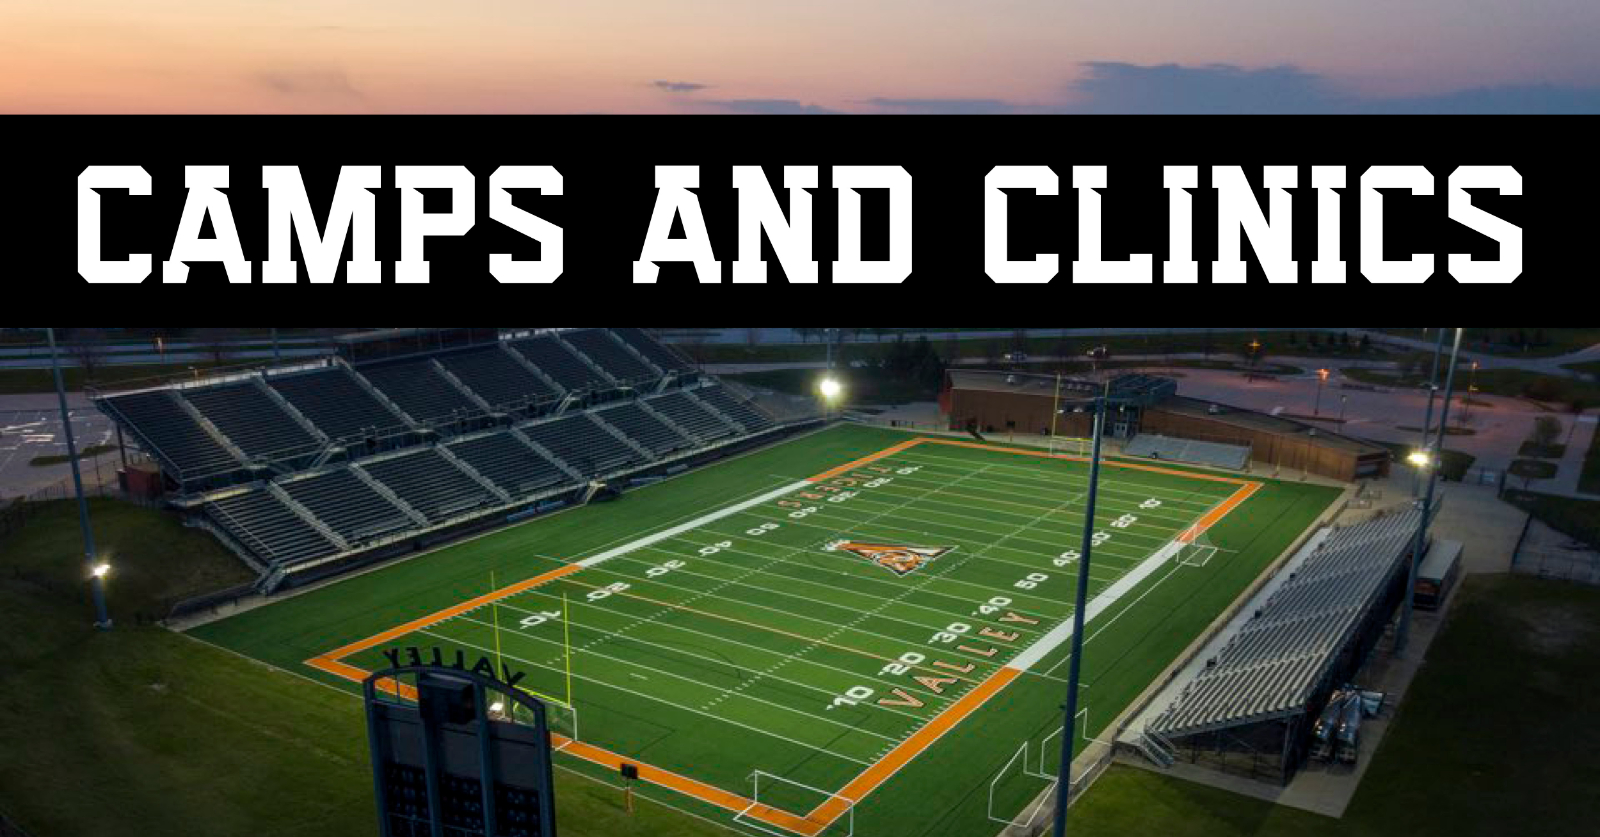 camps and clinics graphic